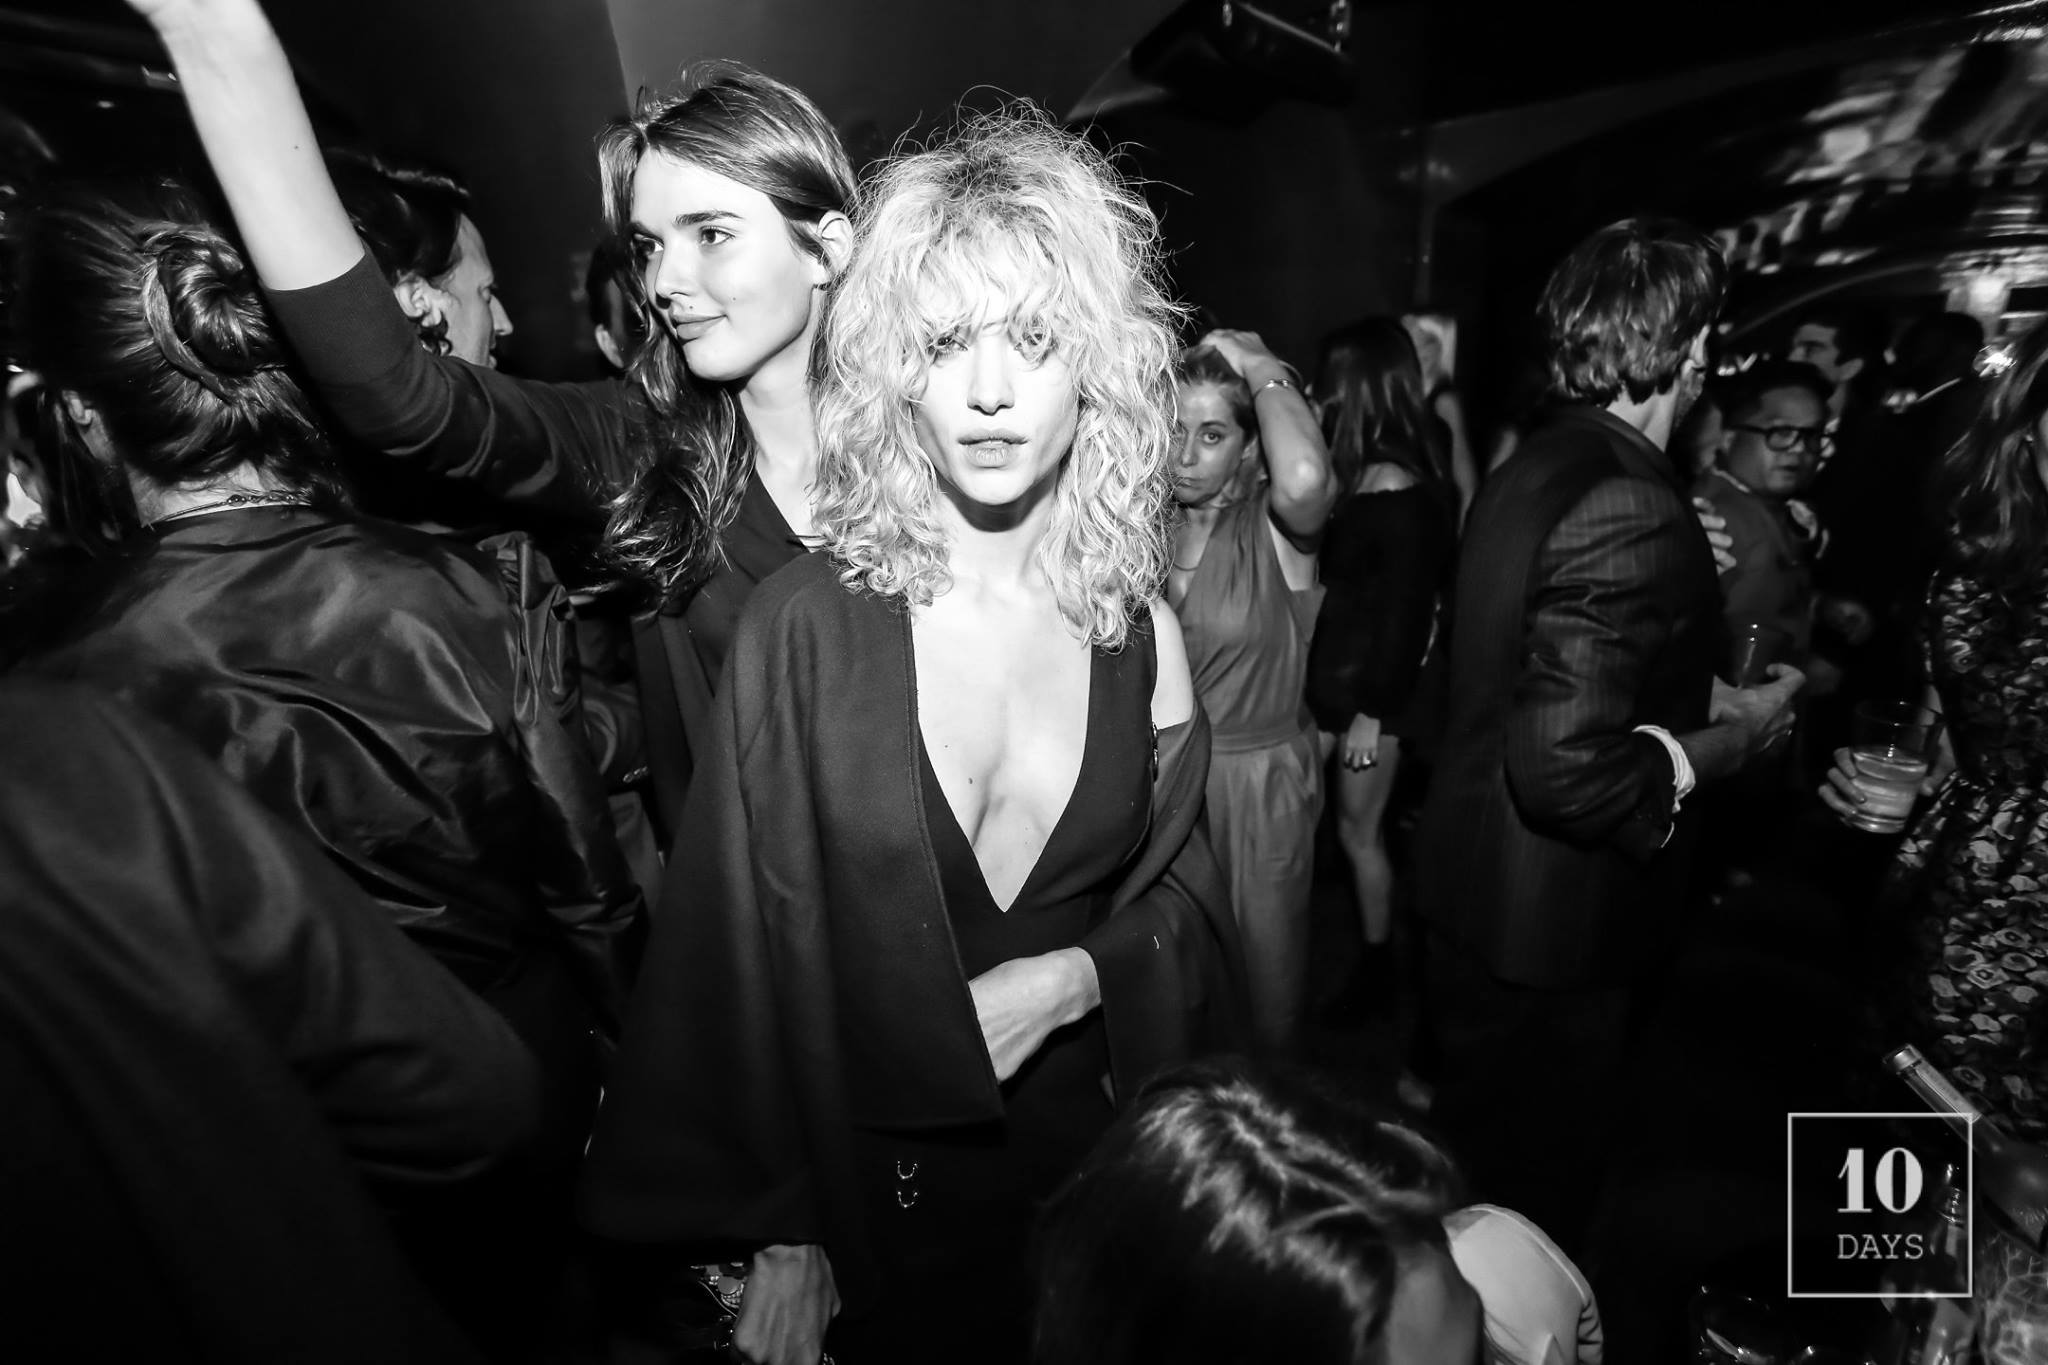 YOUR WOMEN'S PARIS FASHION WEEK SPRING/SUMMER 17/18 AFTERPARTY GUIDE #PFW (PART 1)